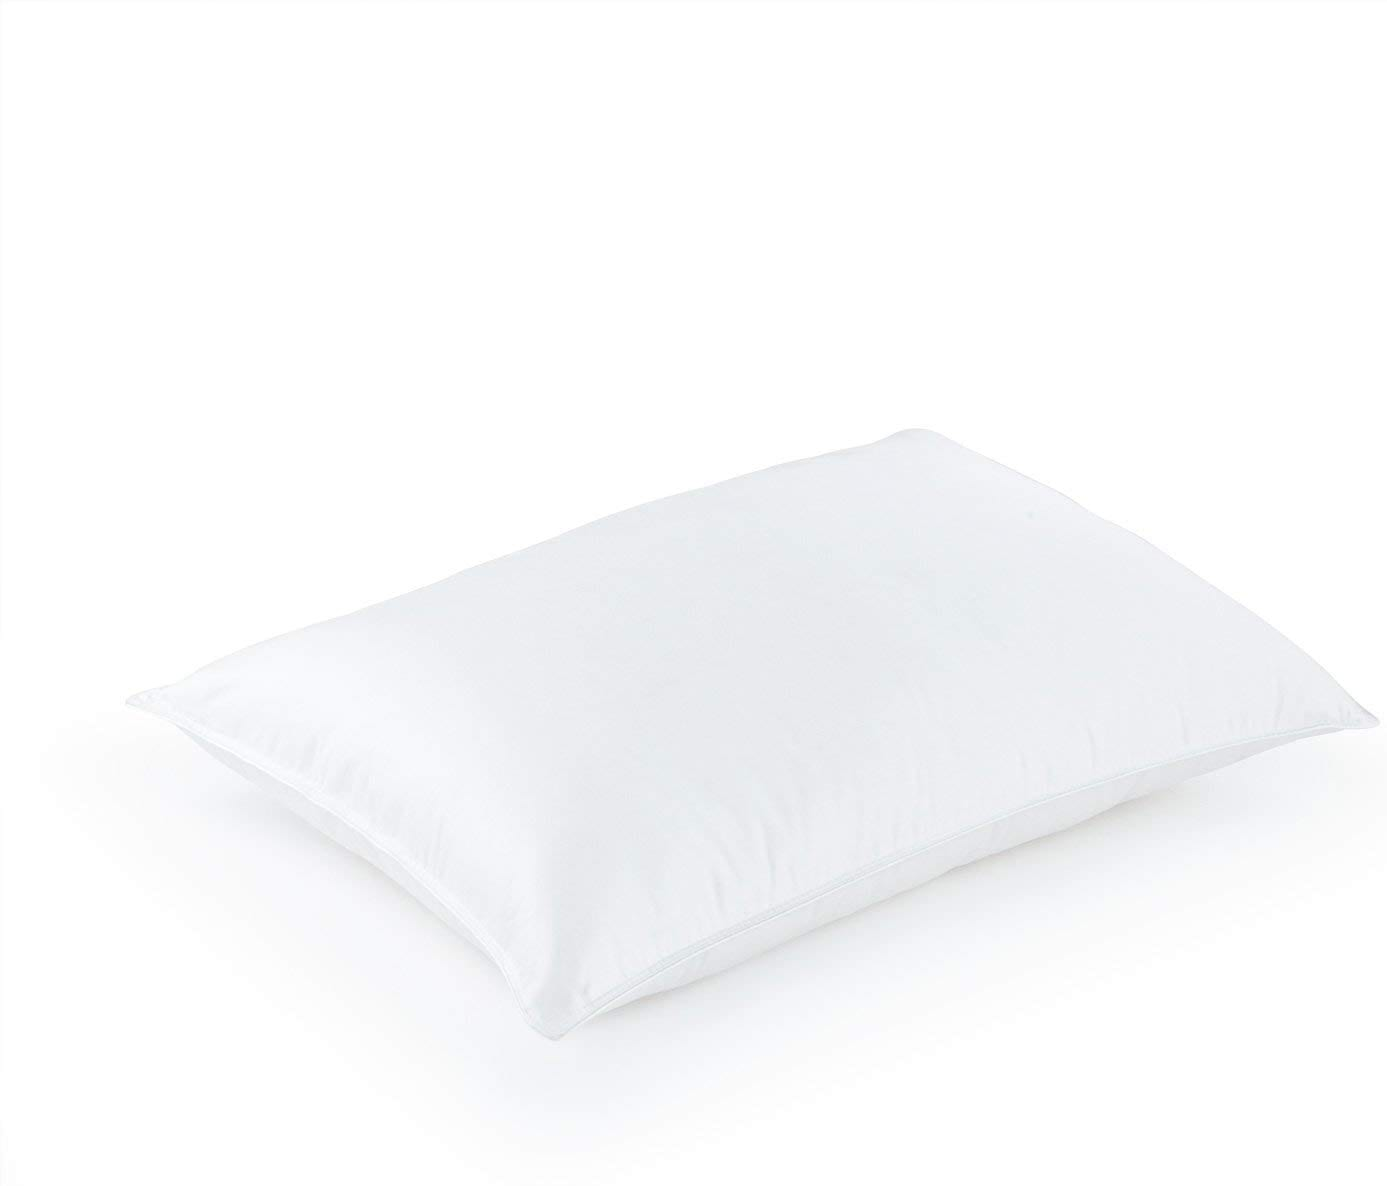 DOWNLITE best down pillows review by www.dailysleep.org